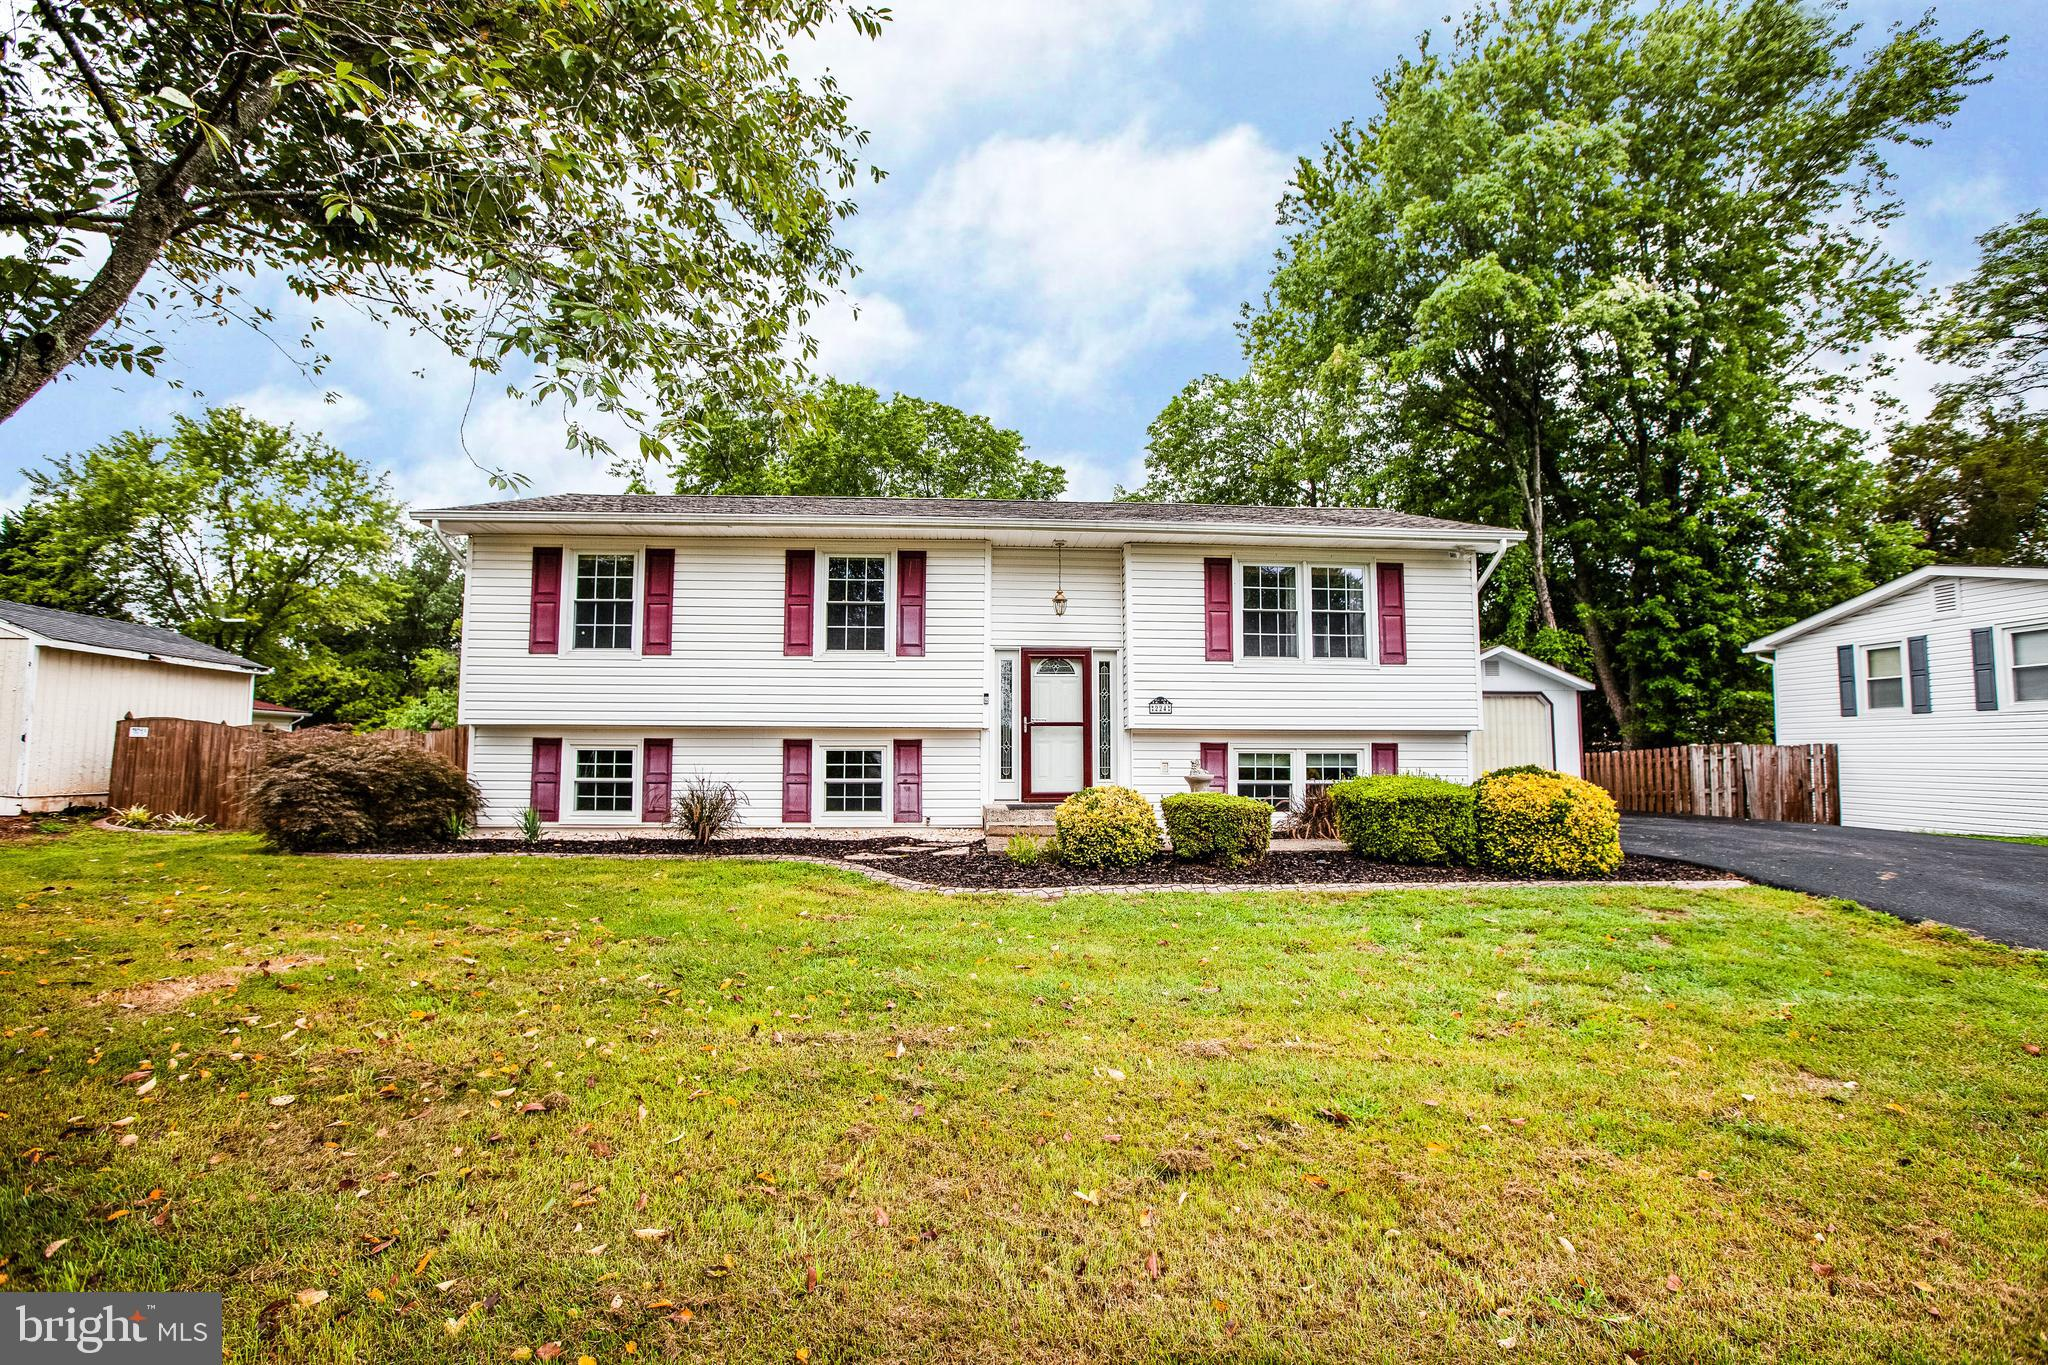 Great location in north Stafford just off Garrisonville Rd.  Quiet sanctuary neighborhood, but conve